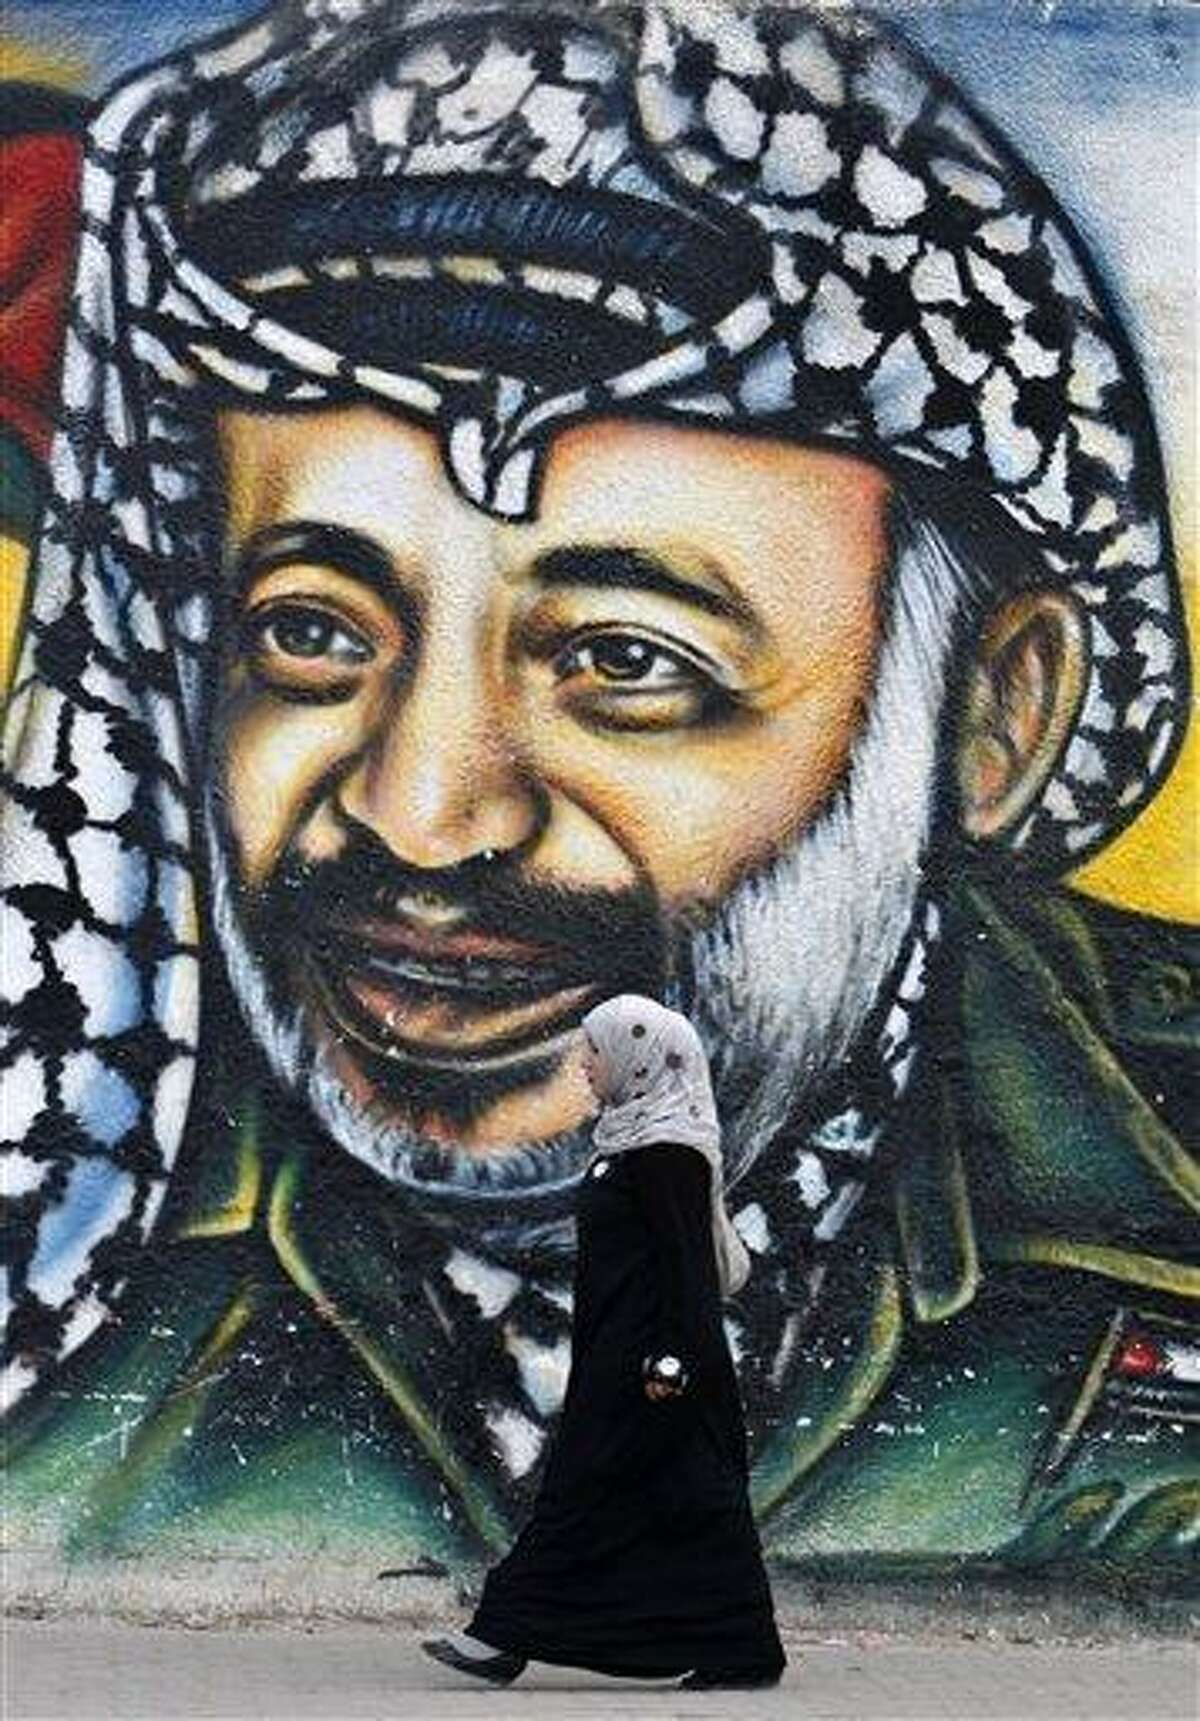 A Palestinian woman walks past a mural of late Palestinian leader Yasser Arafat, in Gaza City, Tuesday, Nov. 27, 2012. Palestinian authorities on Tuesday opened Yasser Arafat's grave and foreign experts took samples from his remains as part of a long-shot attempt, eight years after the iconic leader's mysterious death, to determine whether he was poisoned, as relatives and some political successors have claimed. (AP Photo/Adel Hana)